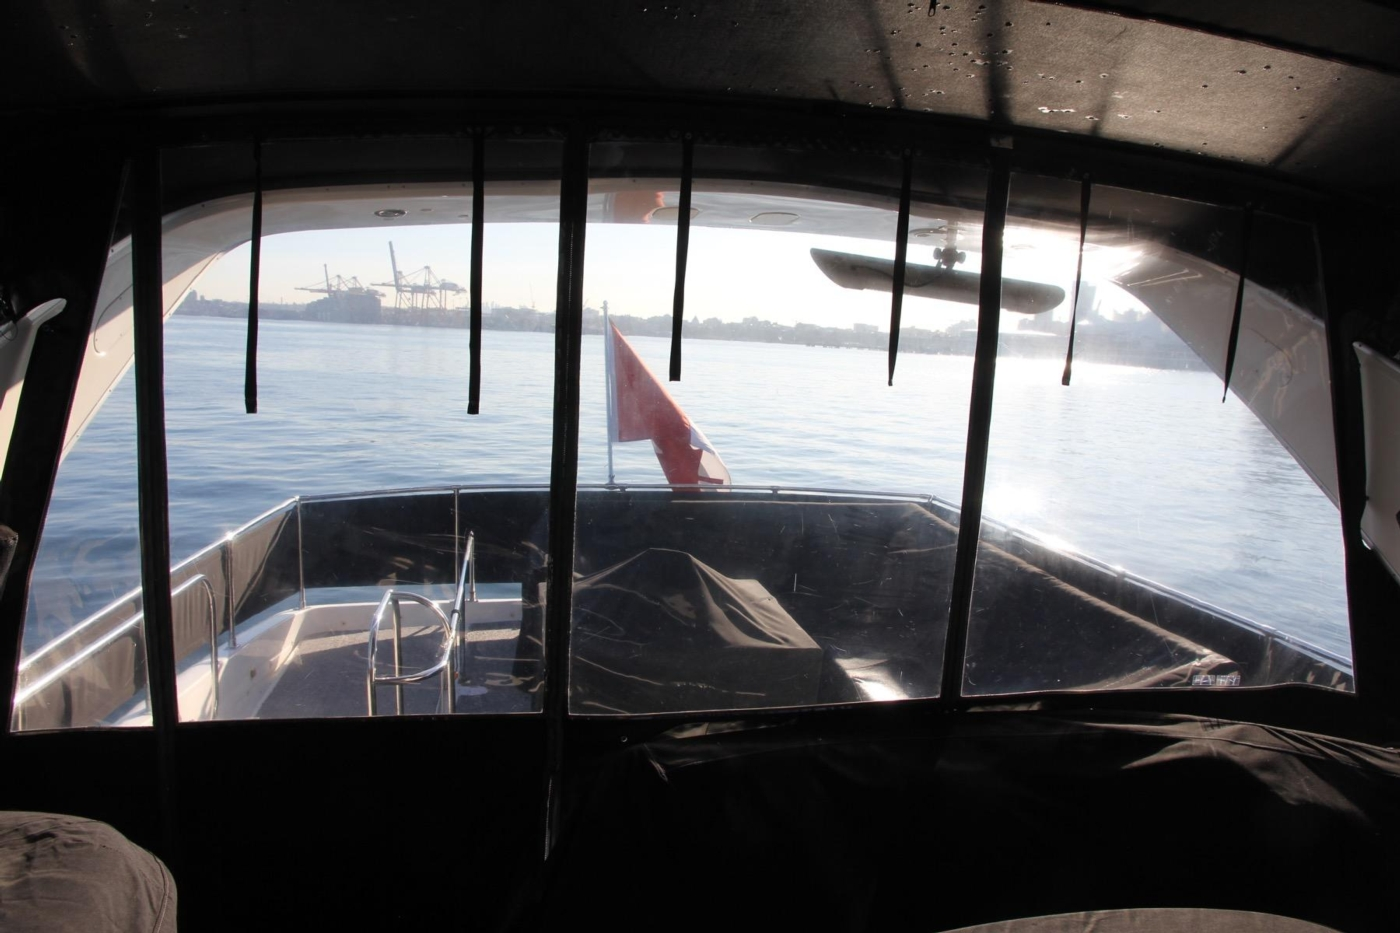 1999 Bayliner 5788 Pilot House Motoryacht, Canvas Covers and Enclosure